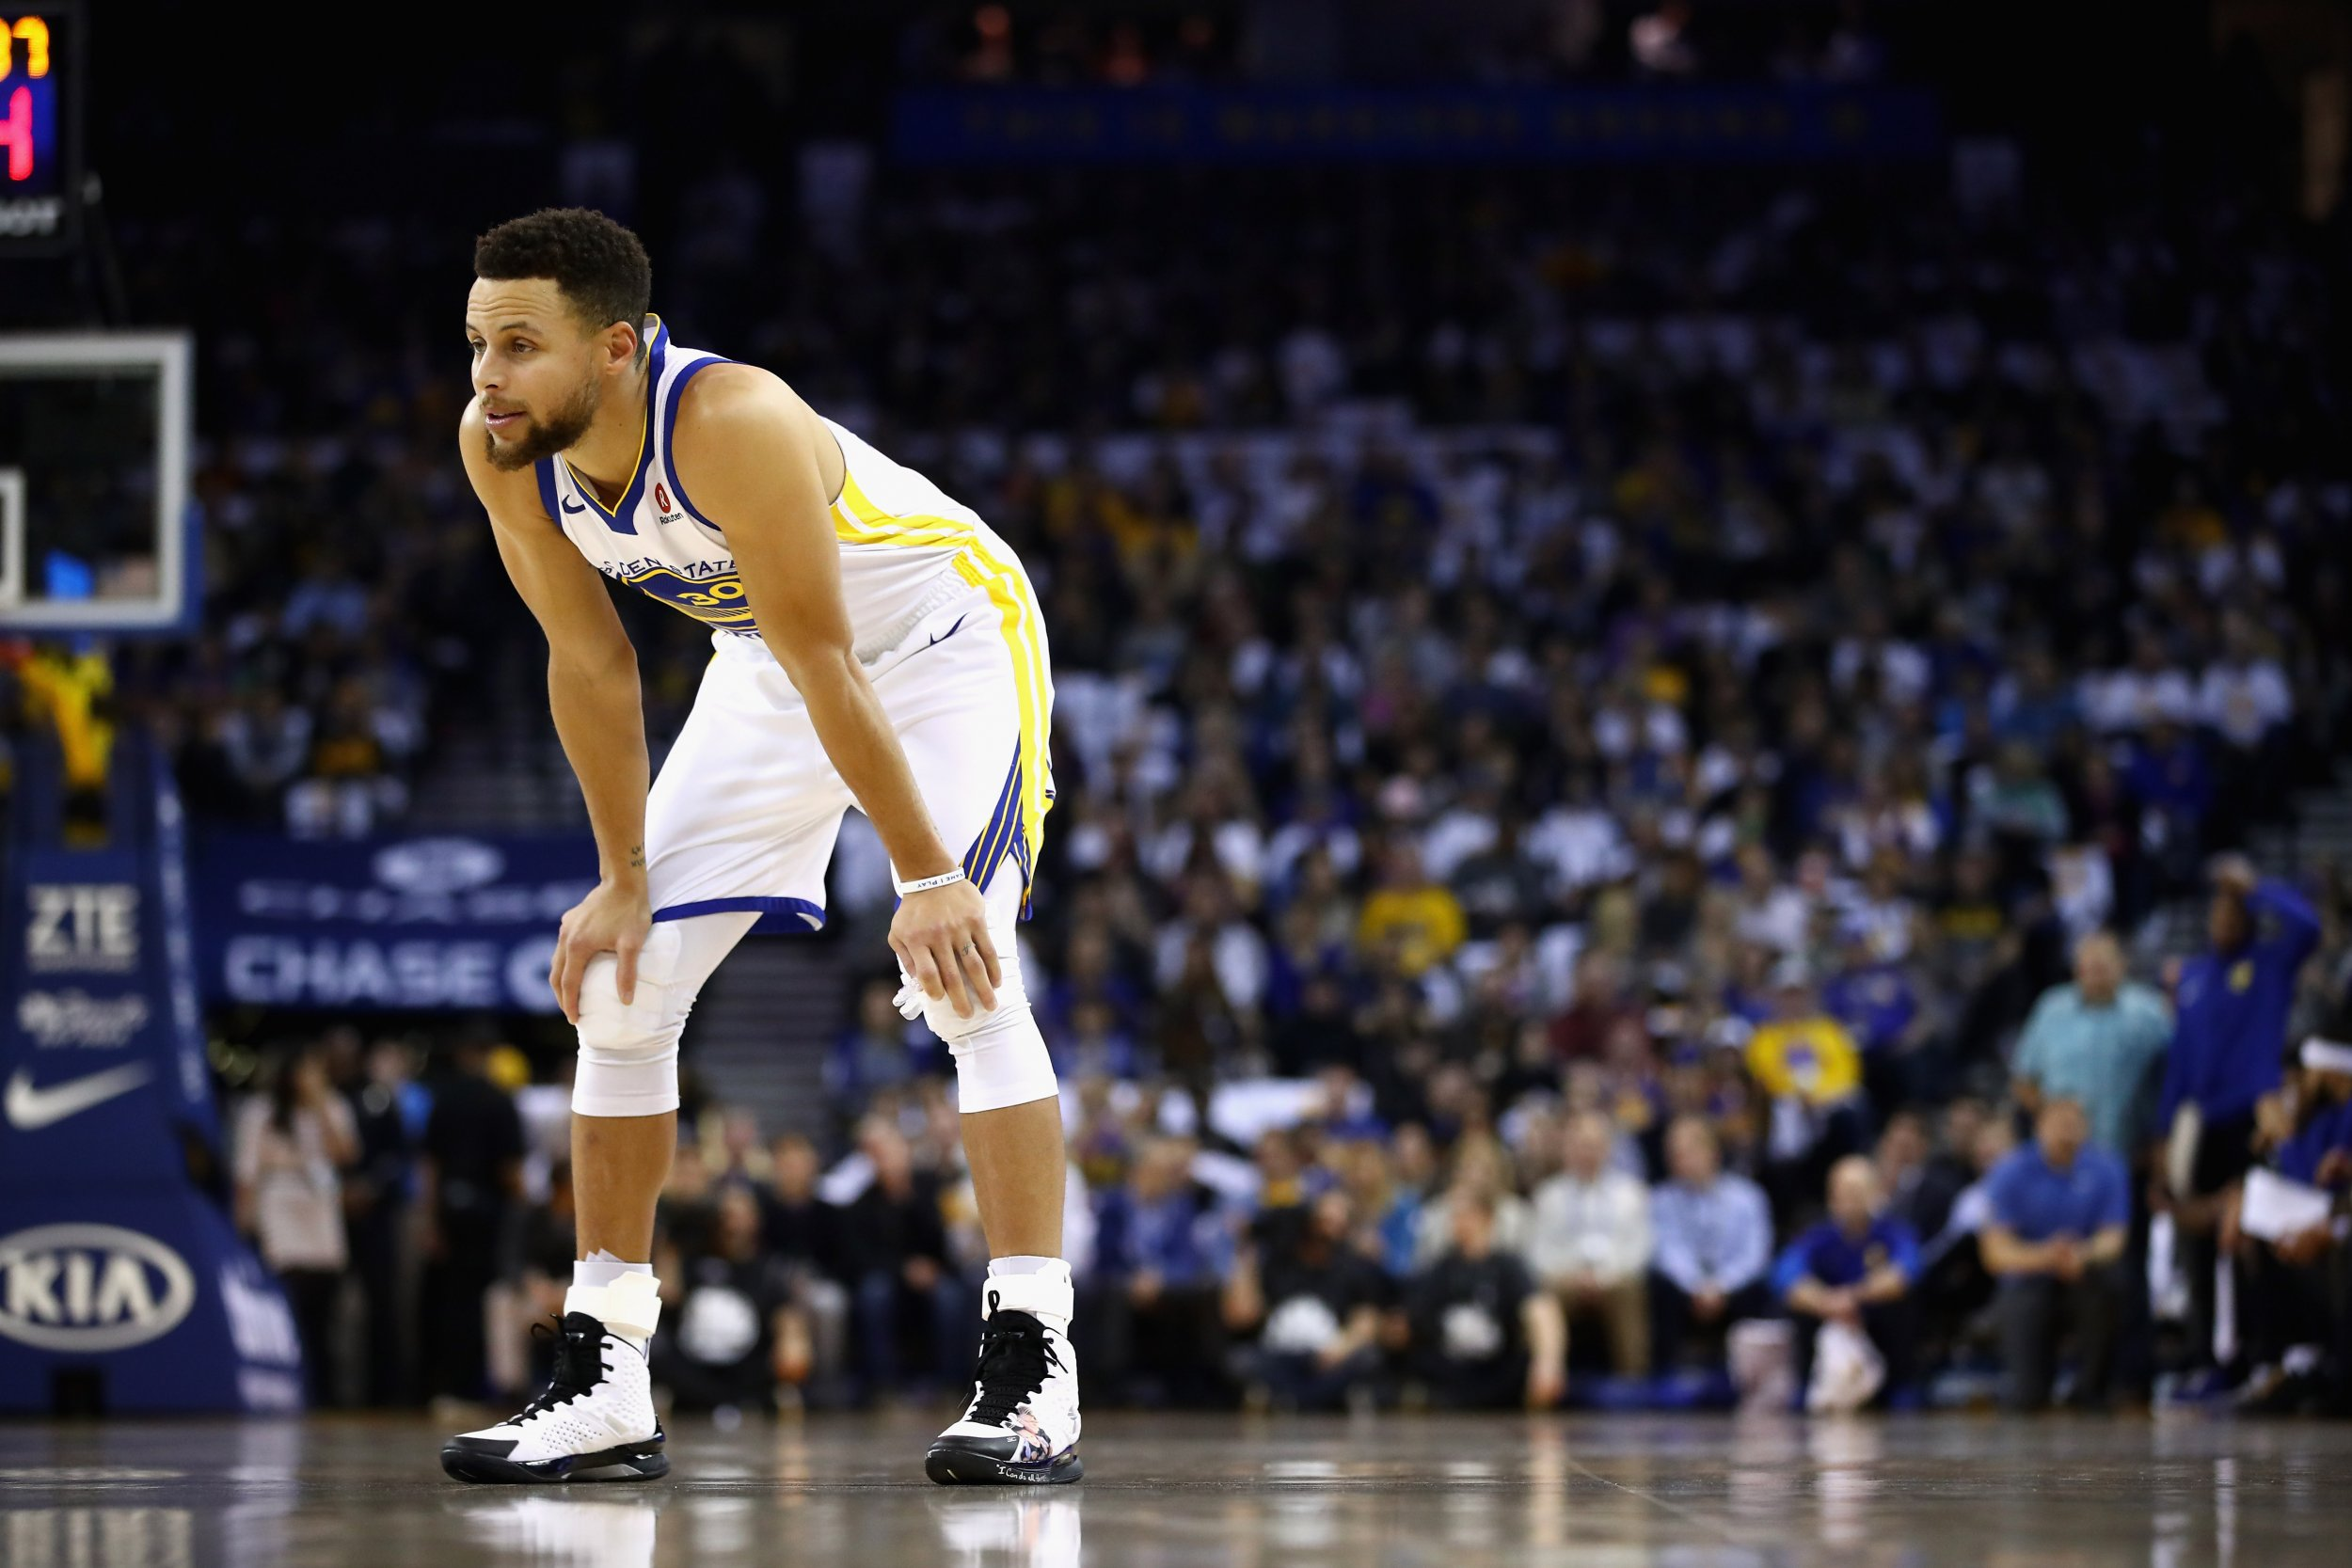 James Western Star >> Stephen Curry's NBA All-Star Game Selections Got Mocked Hard By Twitter